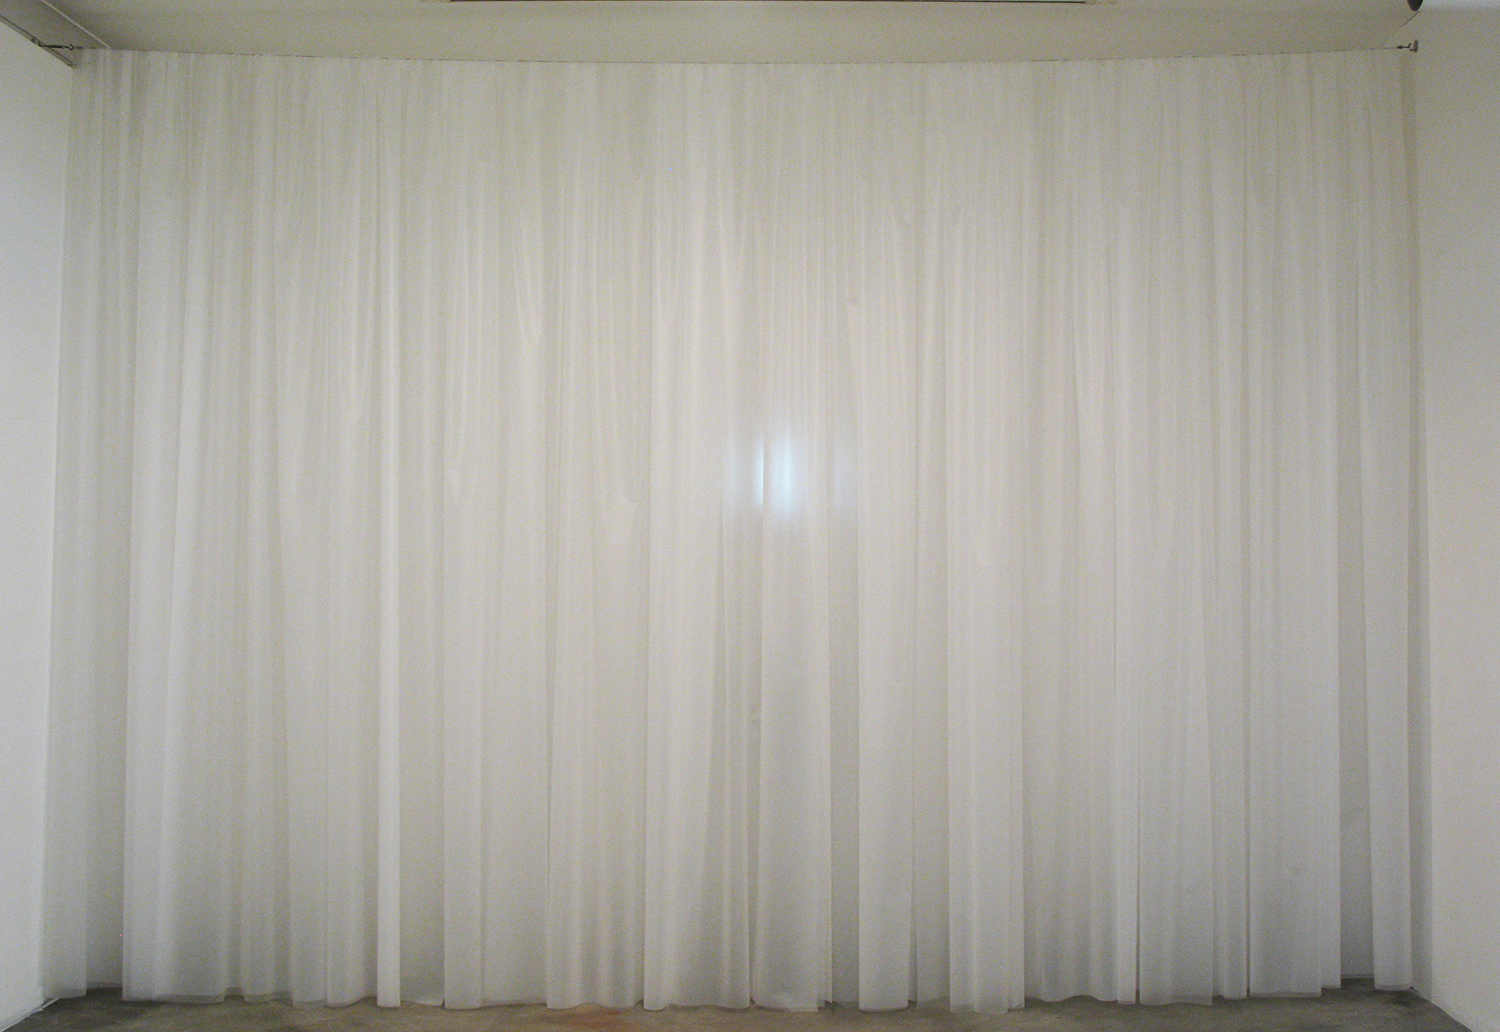 カーテンの向う|beyond curtain / シロイ カーテン|white courtain<br>Plastic sheet, video  h3000 x w4430 mm 2010